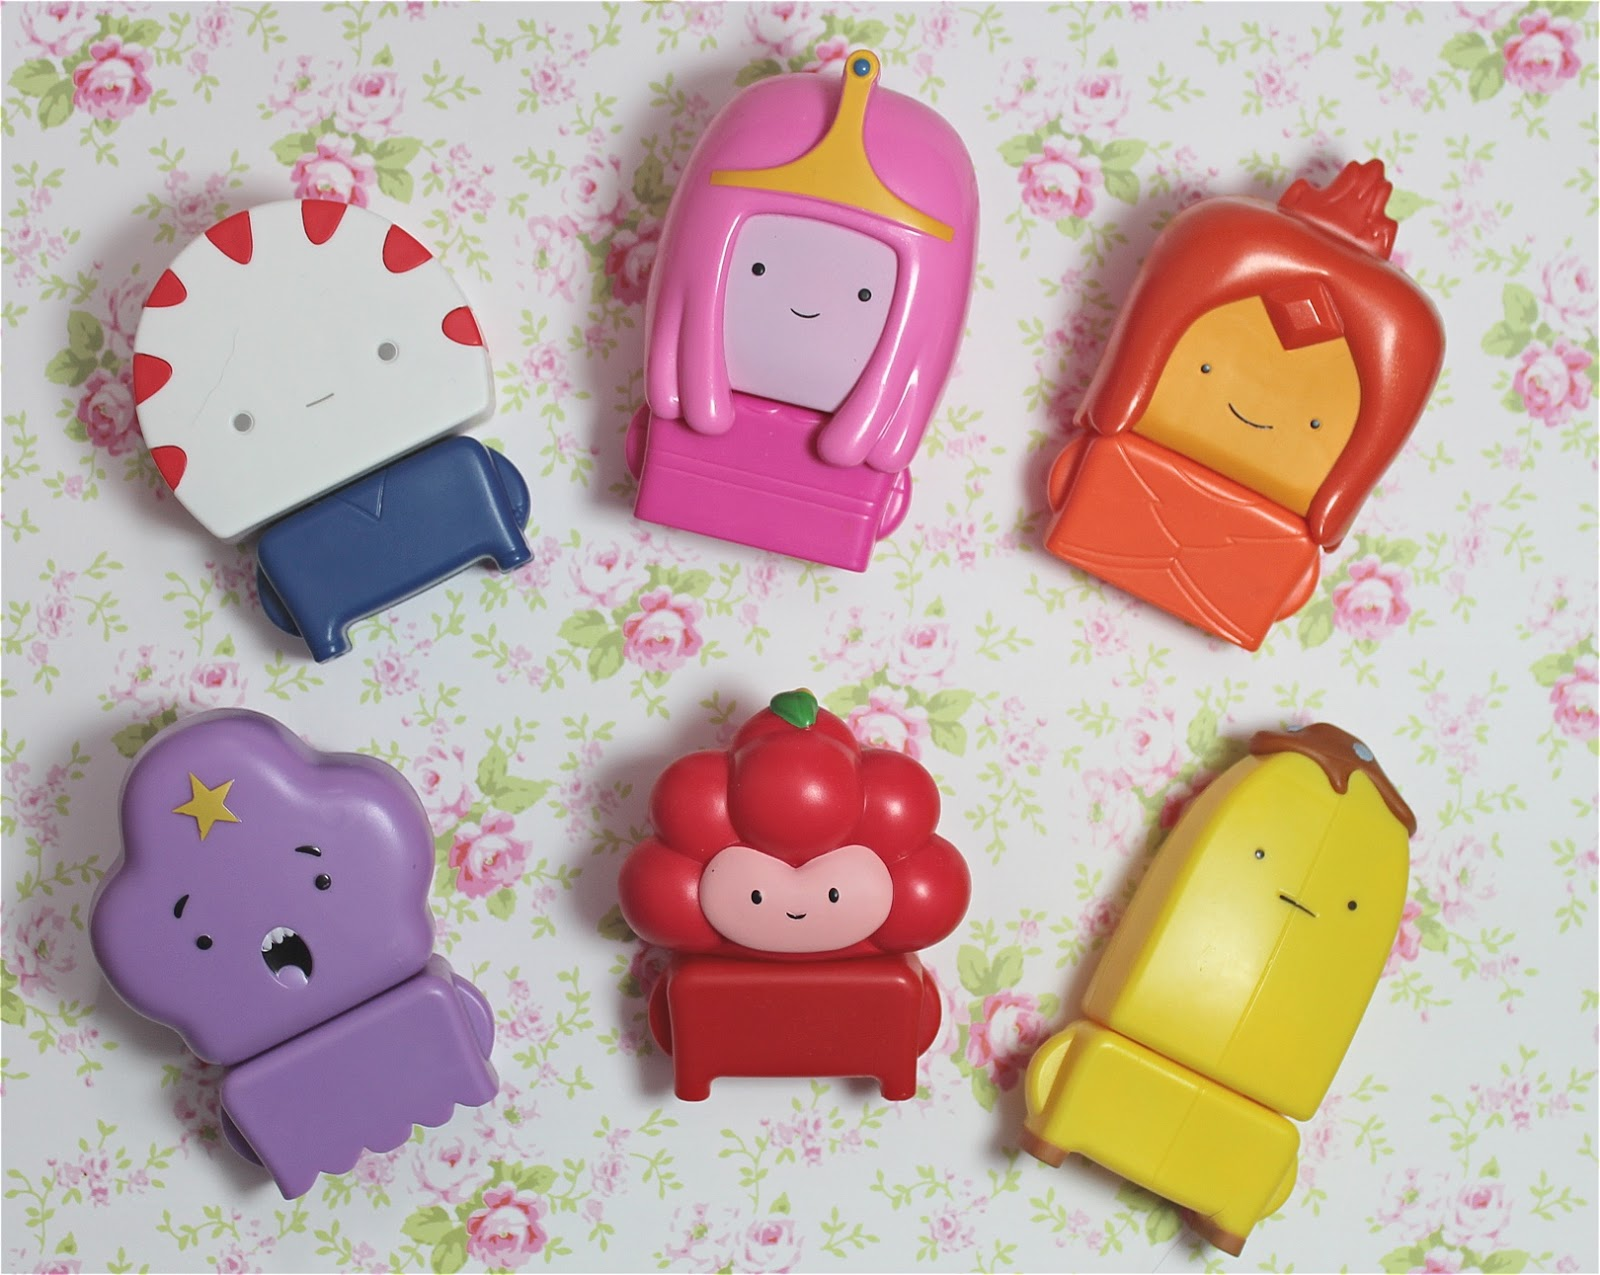 mcdonalds happy meal toys adventure time